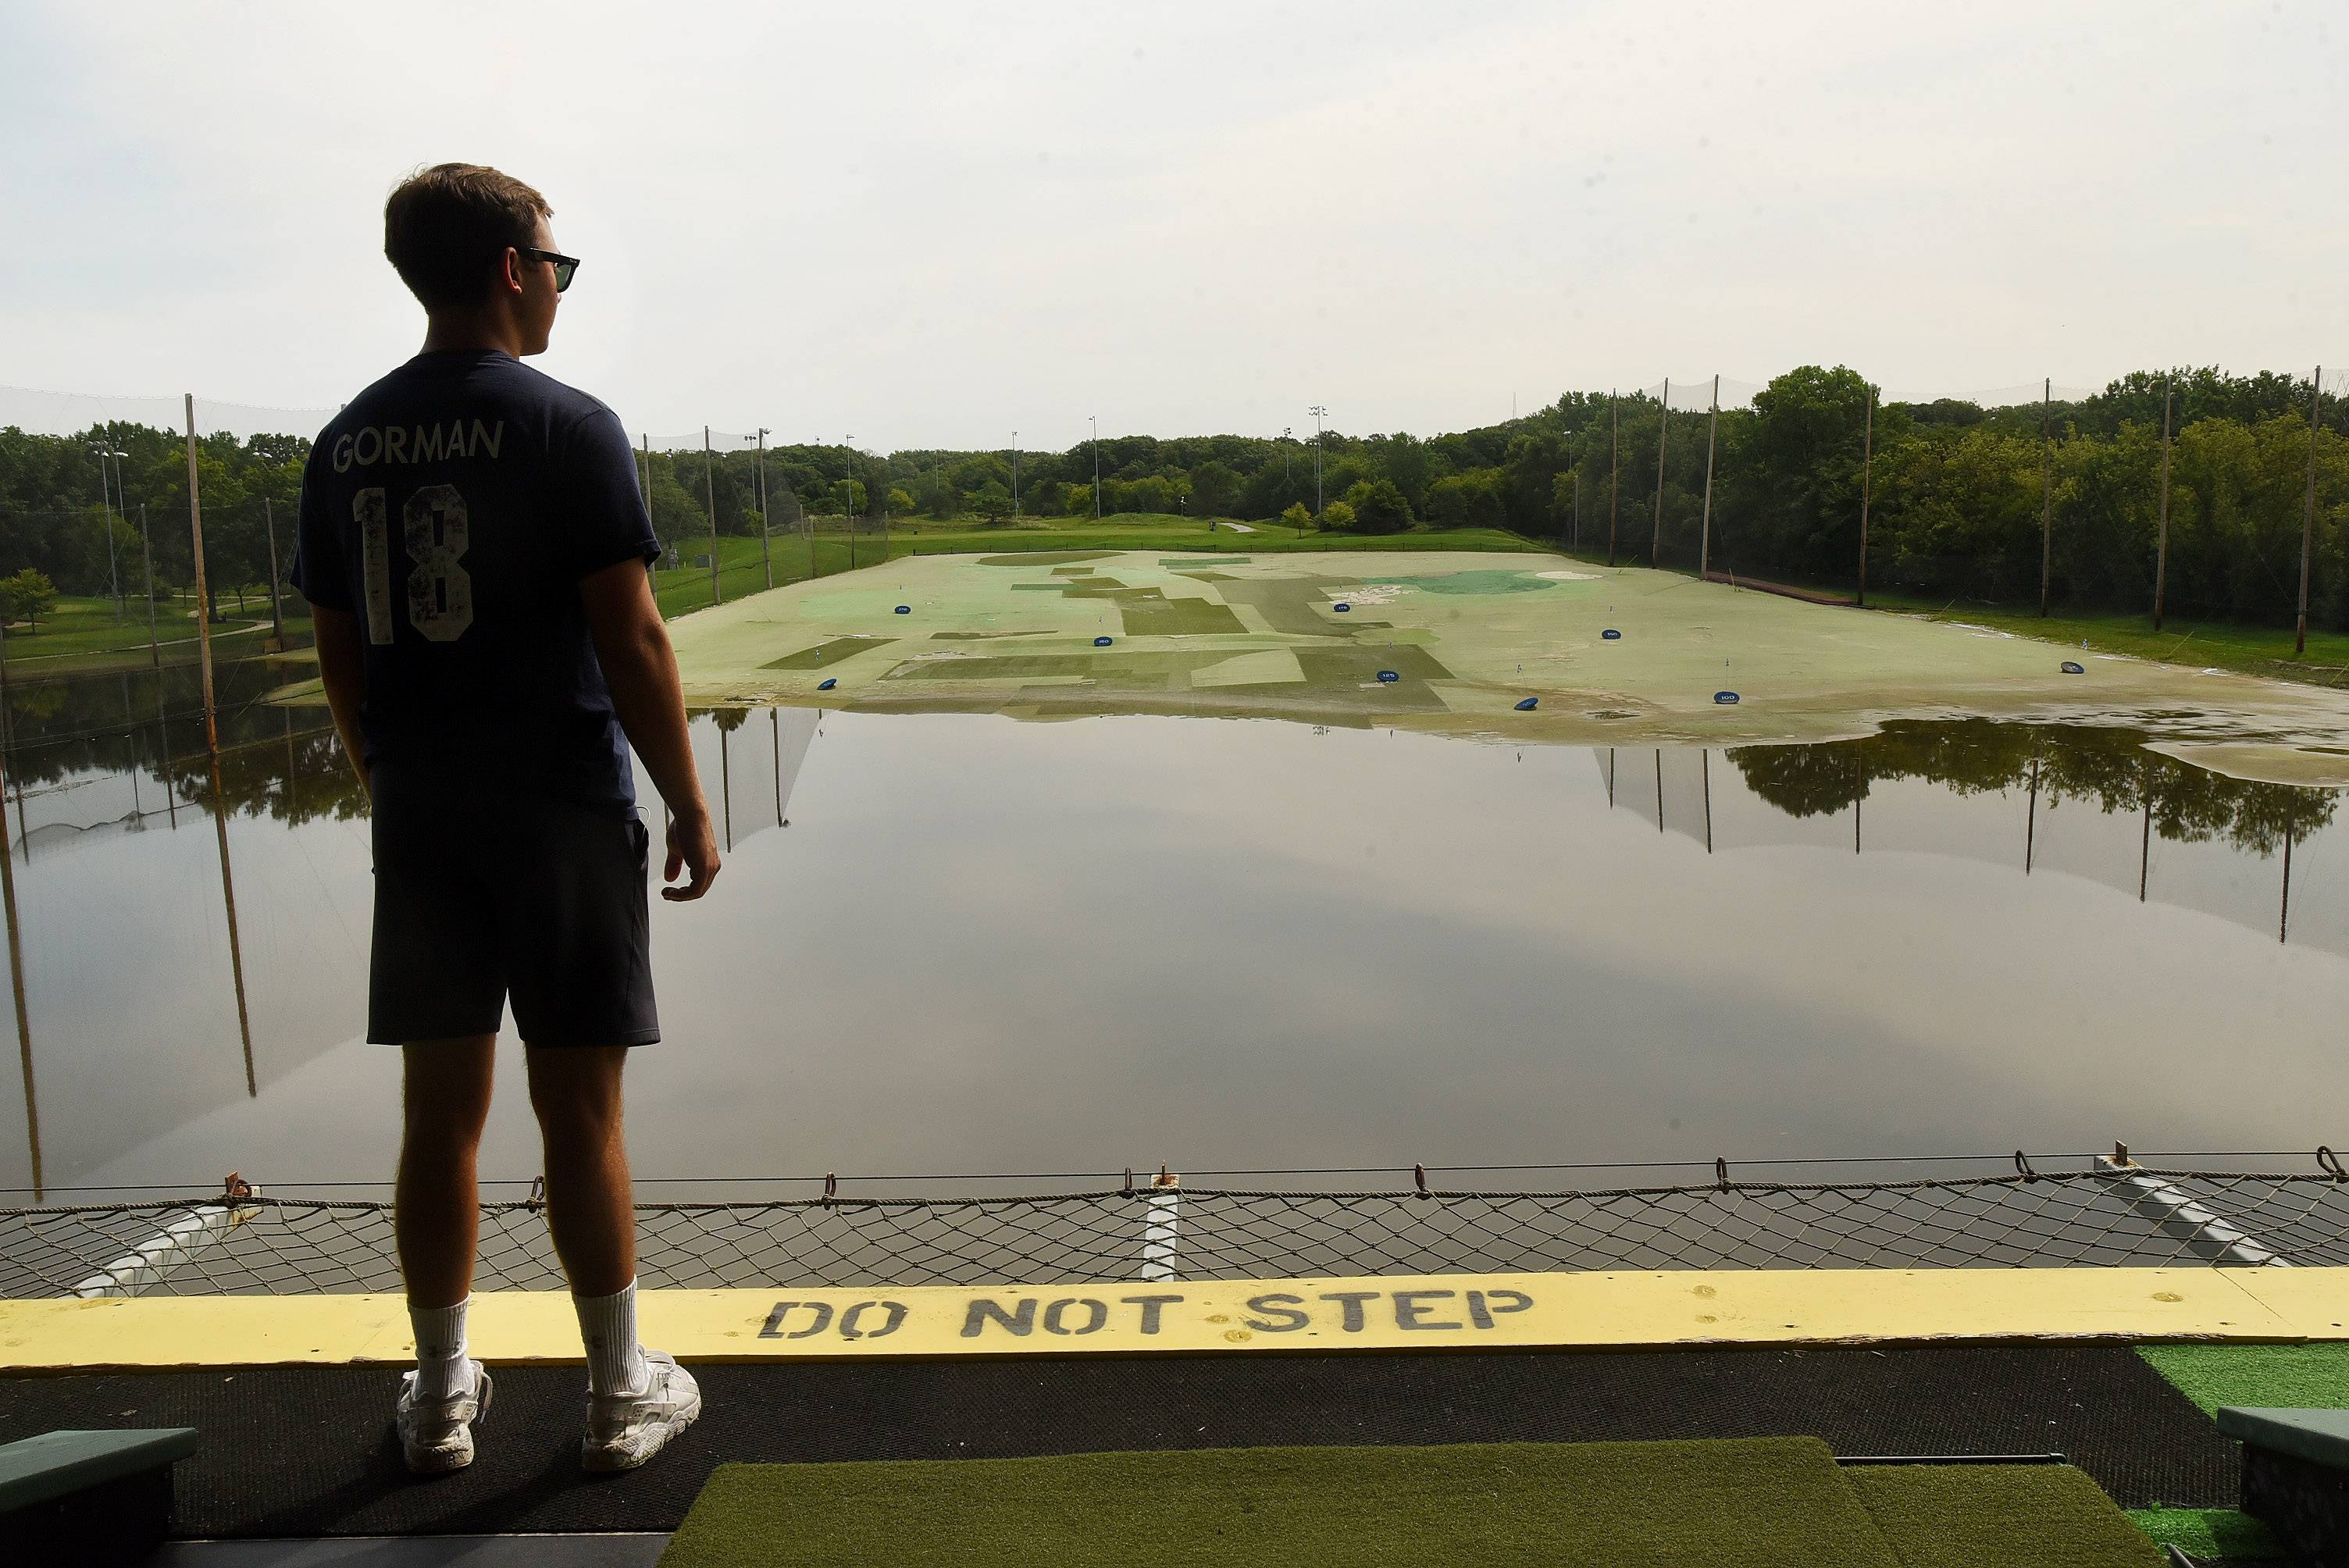 The Des Plaines River spilled over its banks and flooded the driving range at Golf Center Des Plaines. Across the suburbs, floodwaters have shut down parks, golf courses, beaches and other recreational amenities.